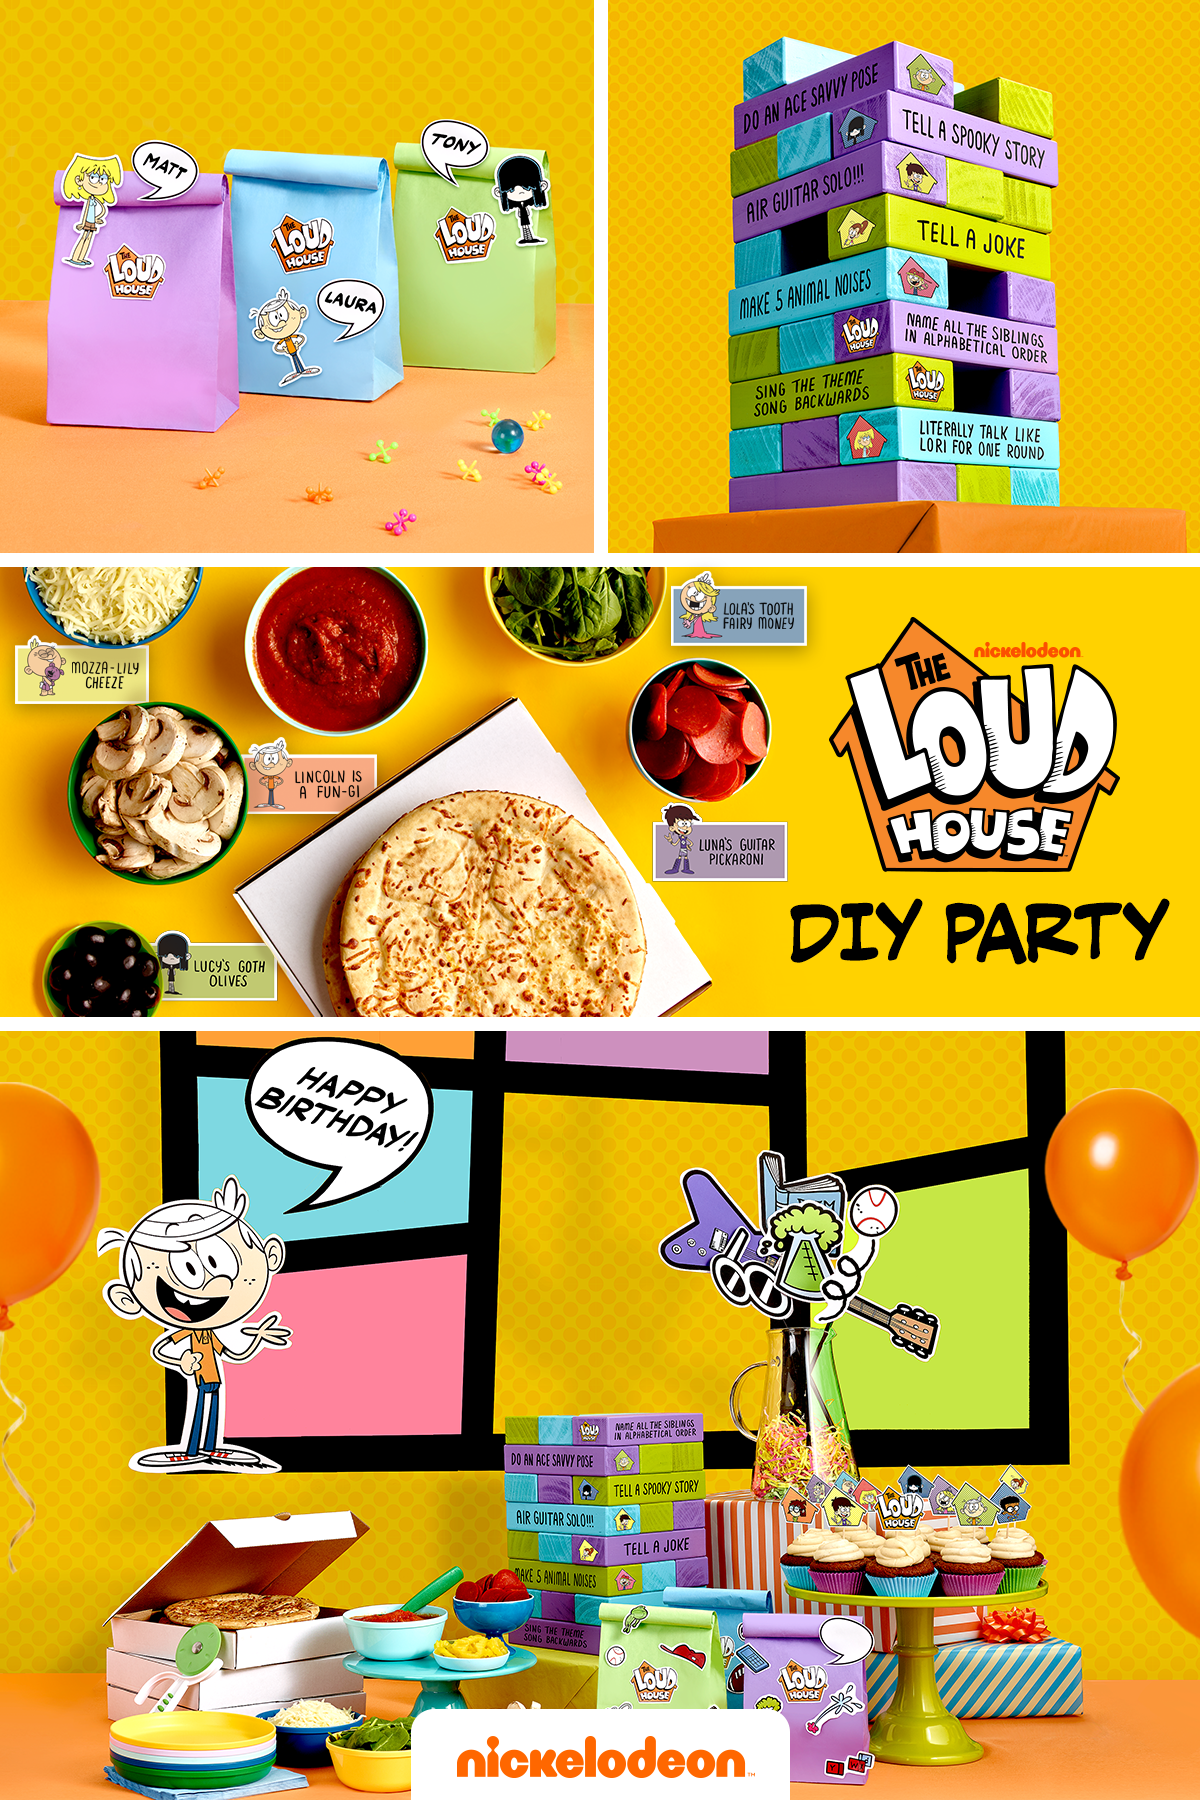 Plan a Loud House Party